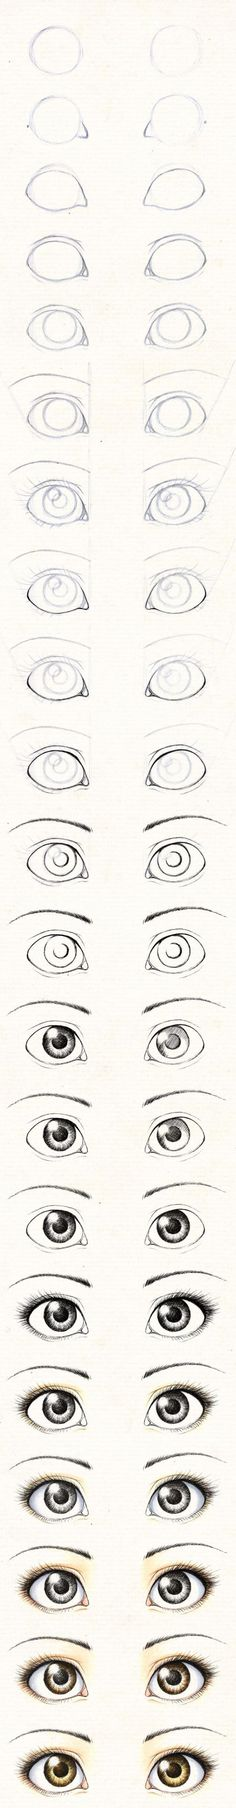 For future reference . . . eyes and portrait visual step-by-step (drawing/coloring)